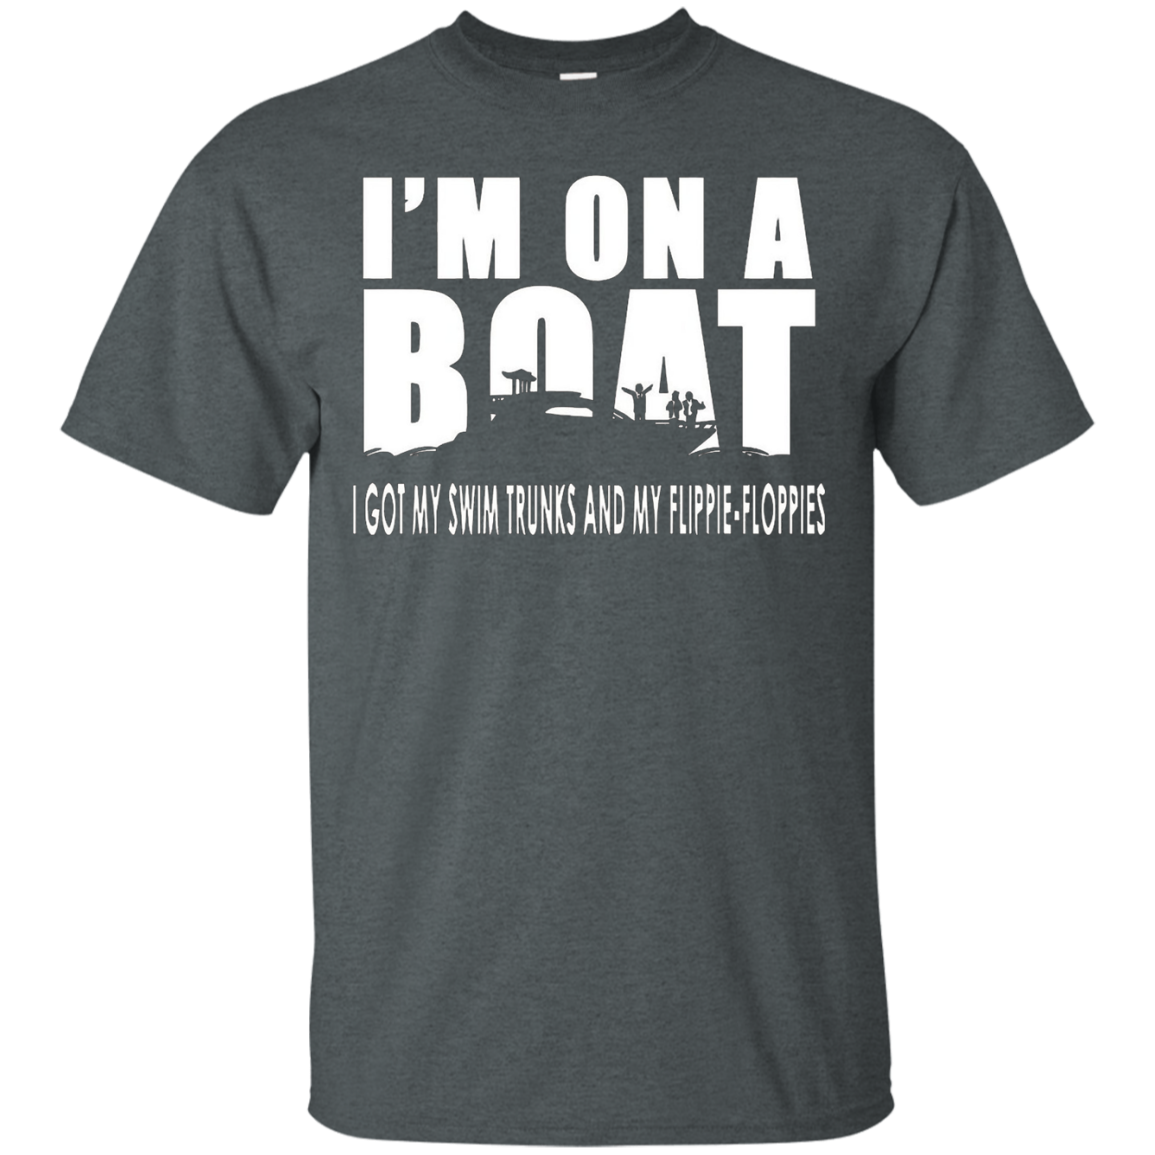 Boats N Hoes Shirt Catalina Wine Mixer I'm on a boat Shirt